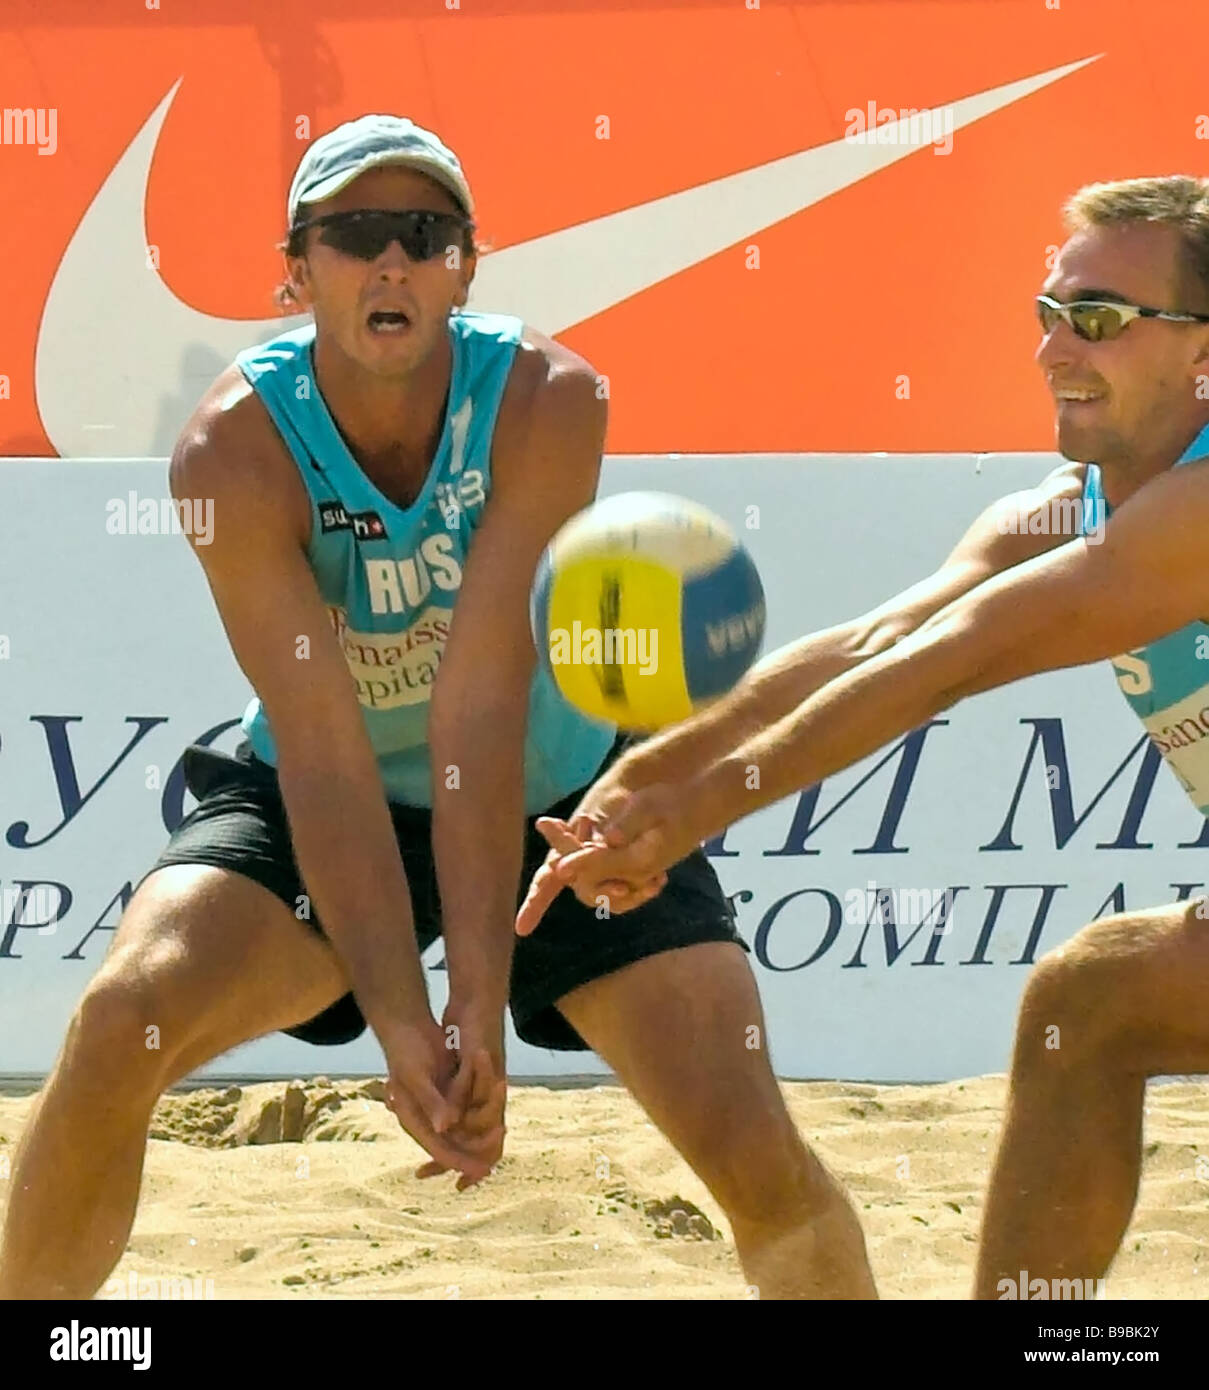 The Russian and Dutch teams meet in the beach volleyball St Petersburg Open semi finals Foreground Russia s Roman - Stock Image